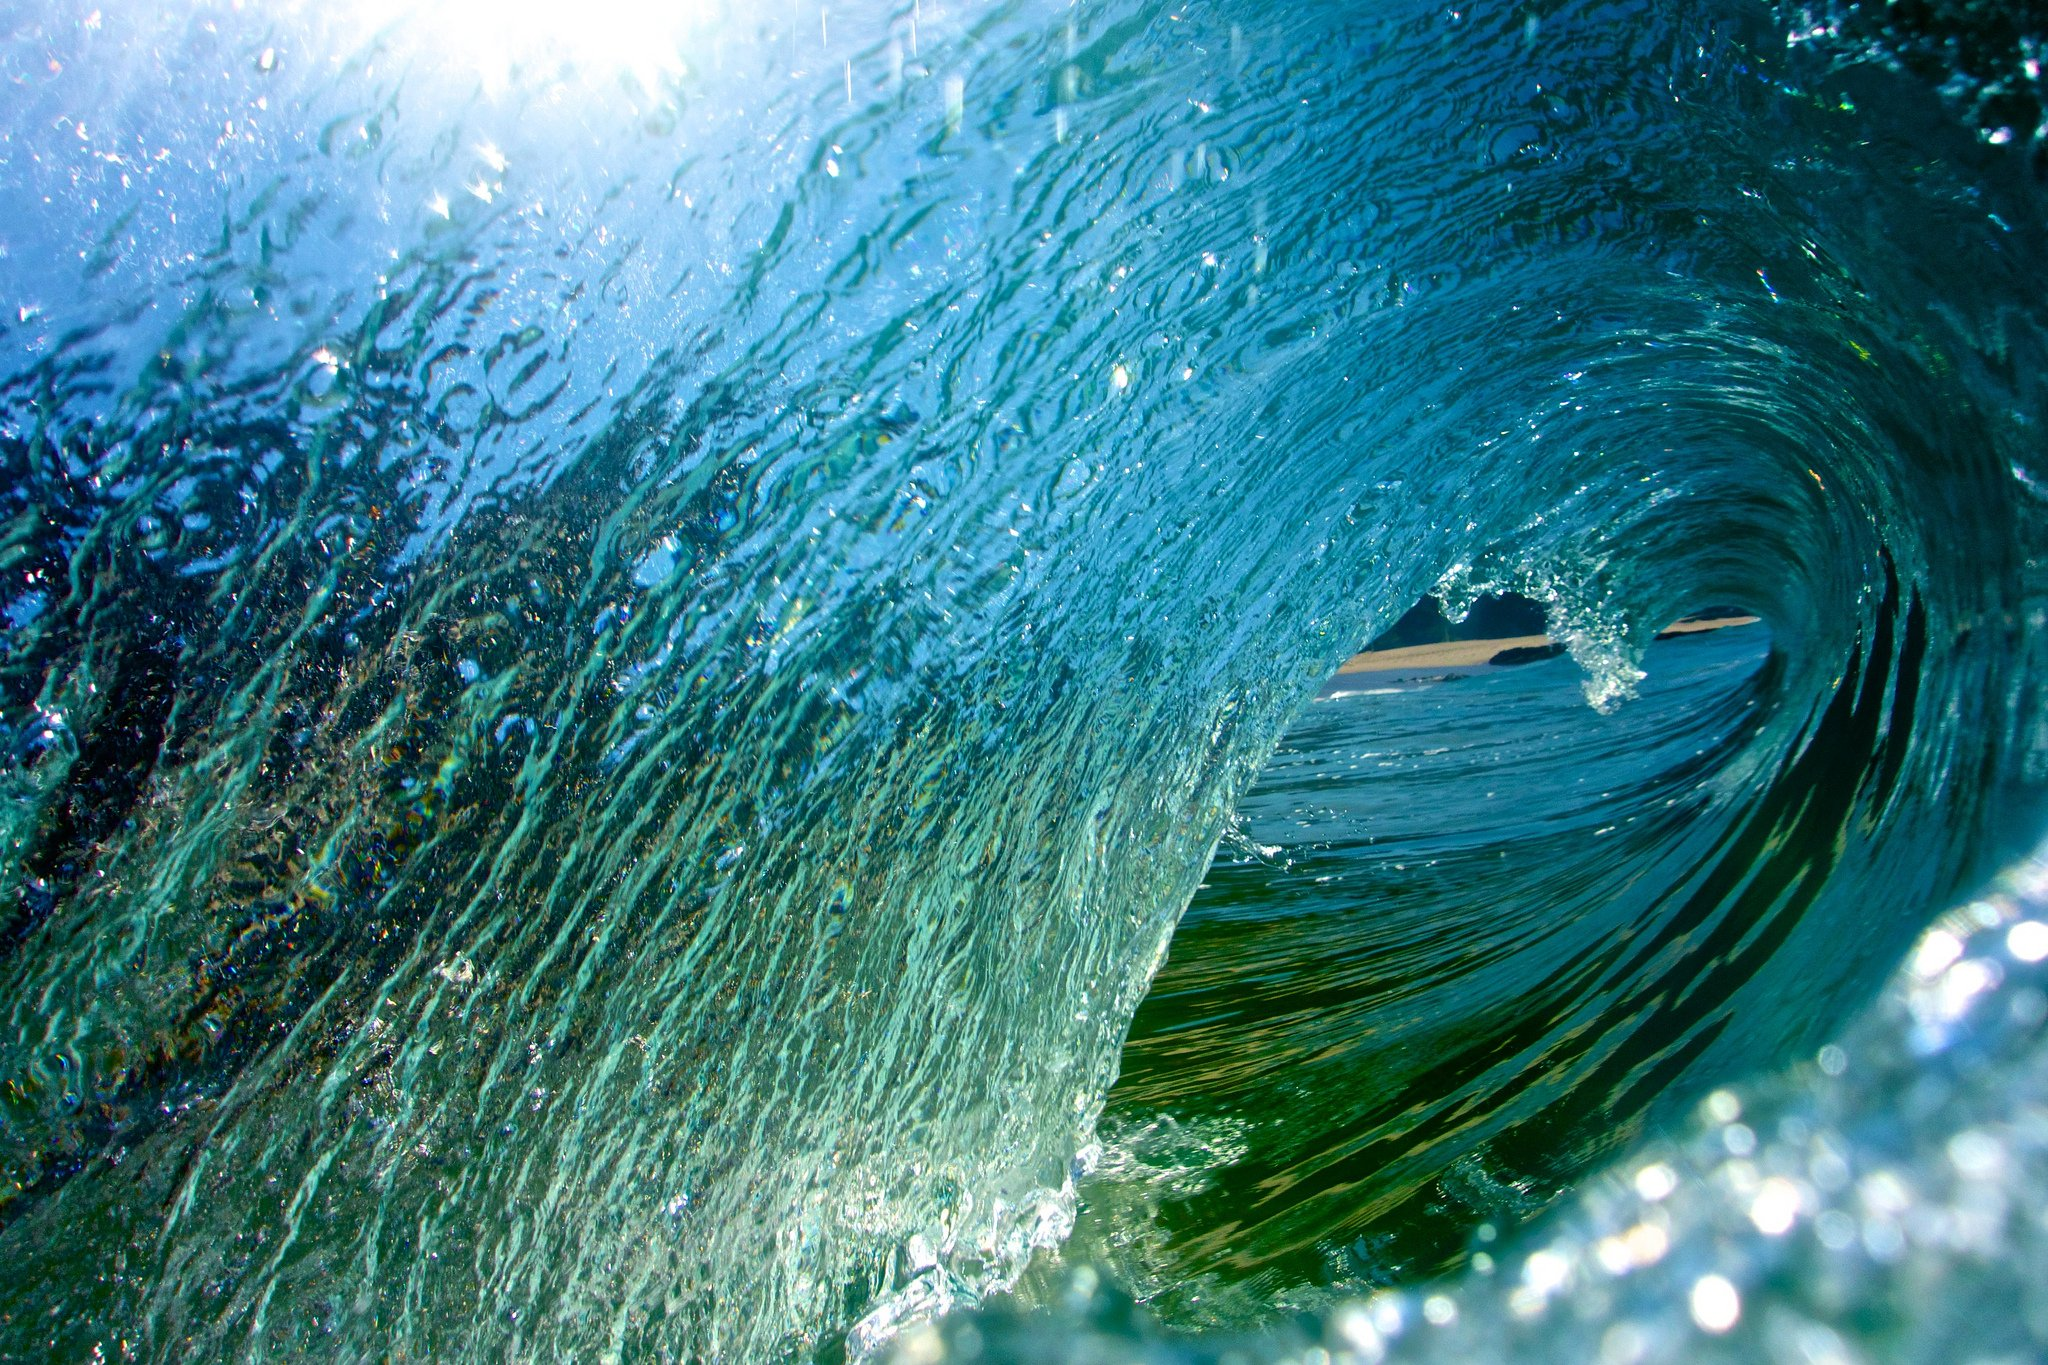 Ocean Waves Iphone Wallpaper 4k Water Wallpapers High Quality Download Free